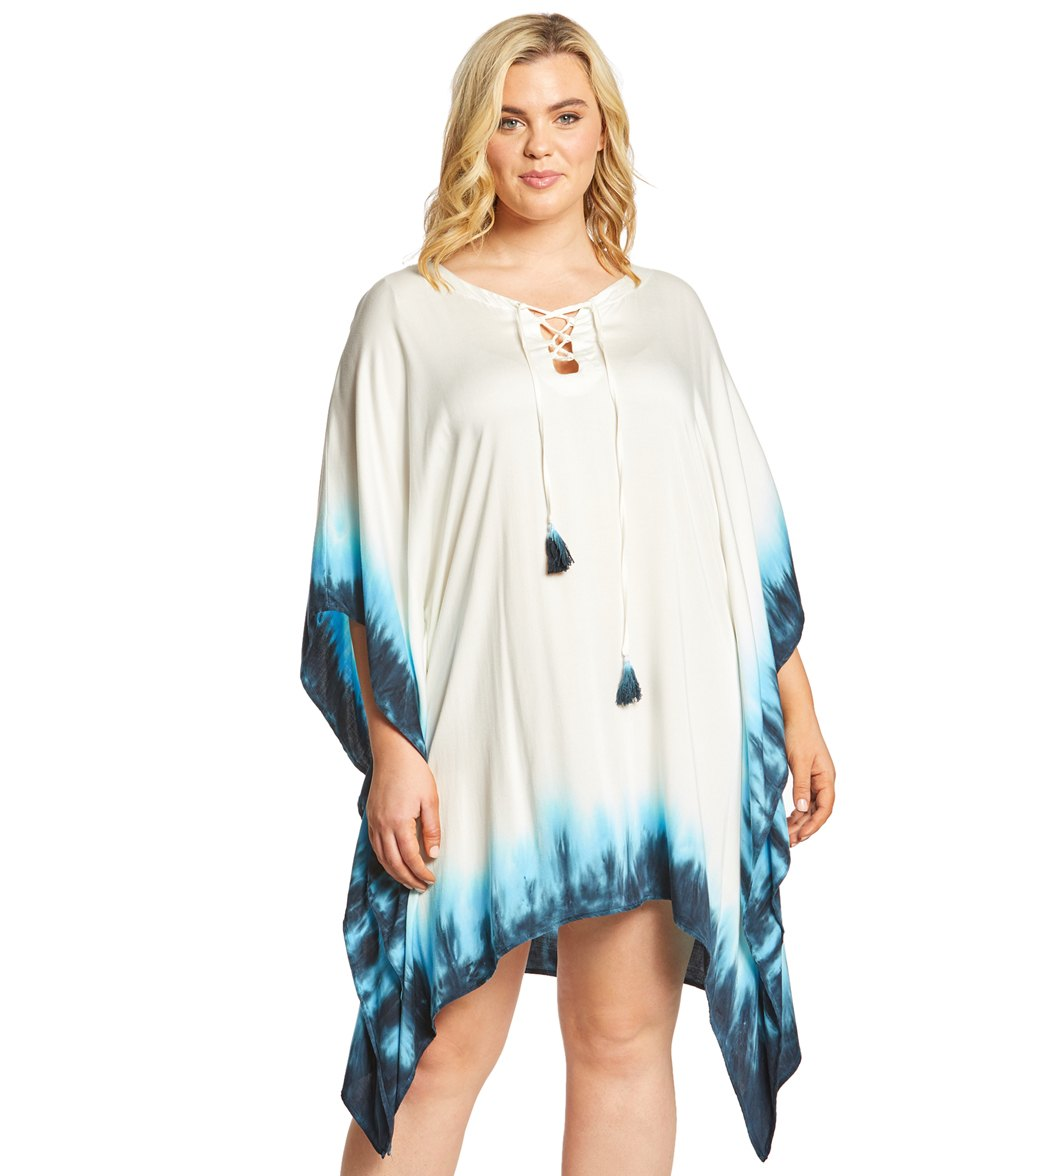 3c64a4fd947f0 La Blanca Plus Size St. Tropez Lace Up Tunic at SwimOutlet.com - Free  Shipping